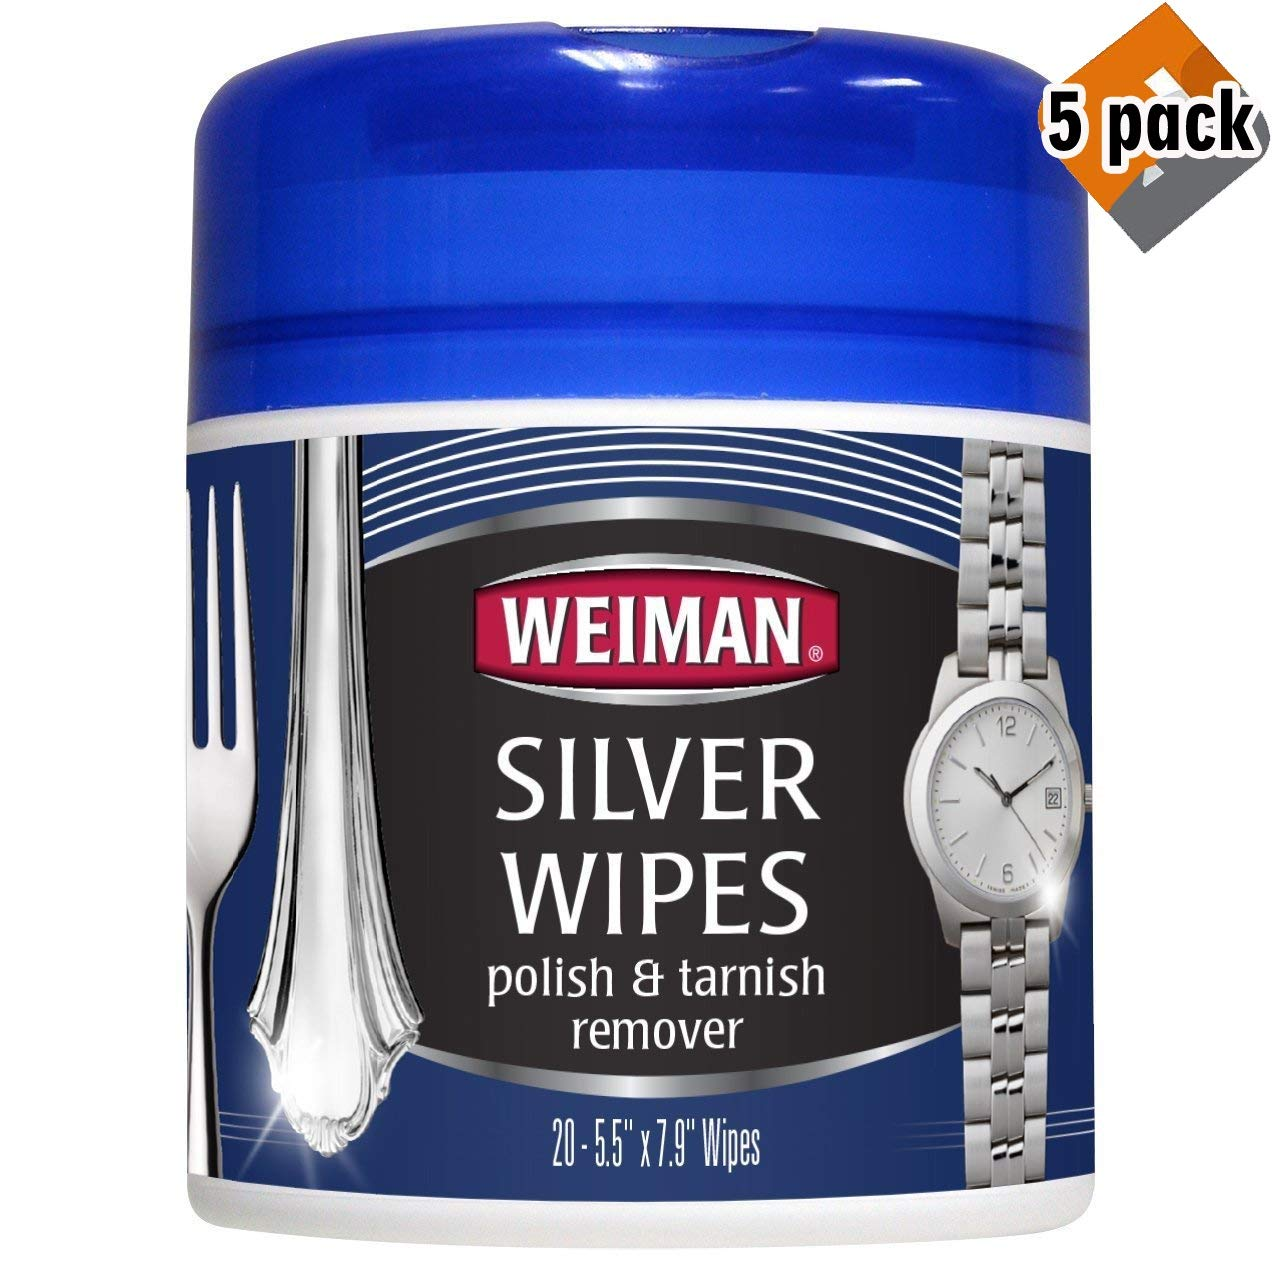 Silver Wipes - Jewelry Wipes - Cleaner and Polisher for Silver Jewelry Sterling Silver Silver Plate and Fine Antique Silver - 20 Count - Ammonia Free - 5-Pack